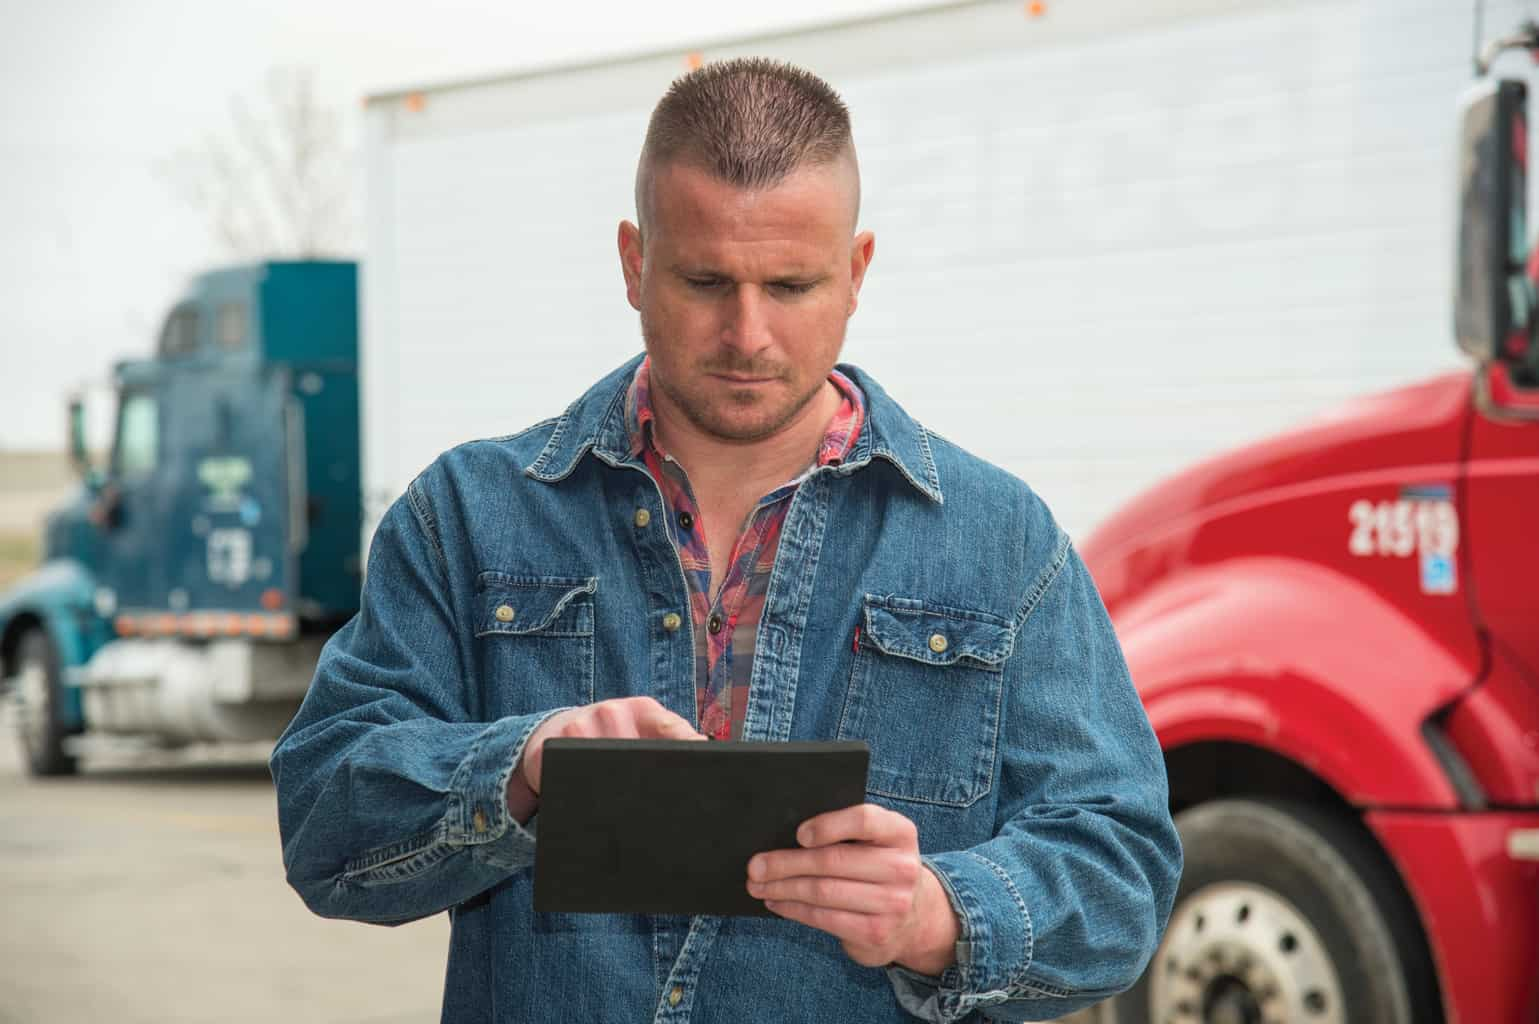 Still not on an ELD? 3 steps to compliance – if you start